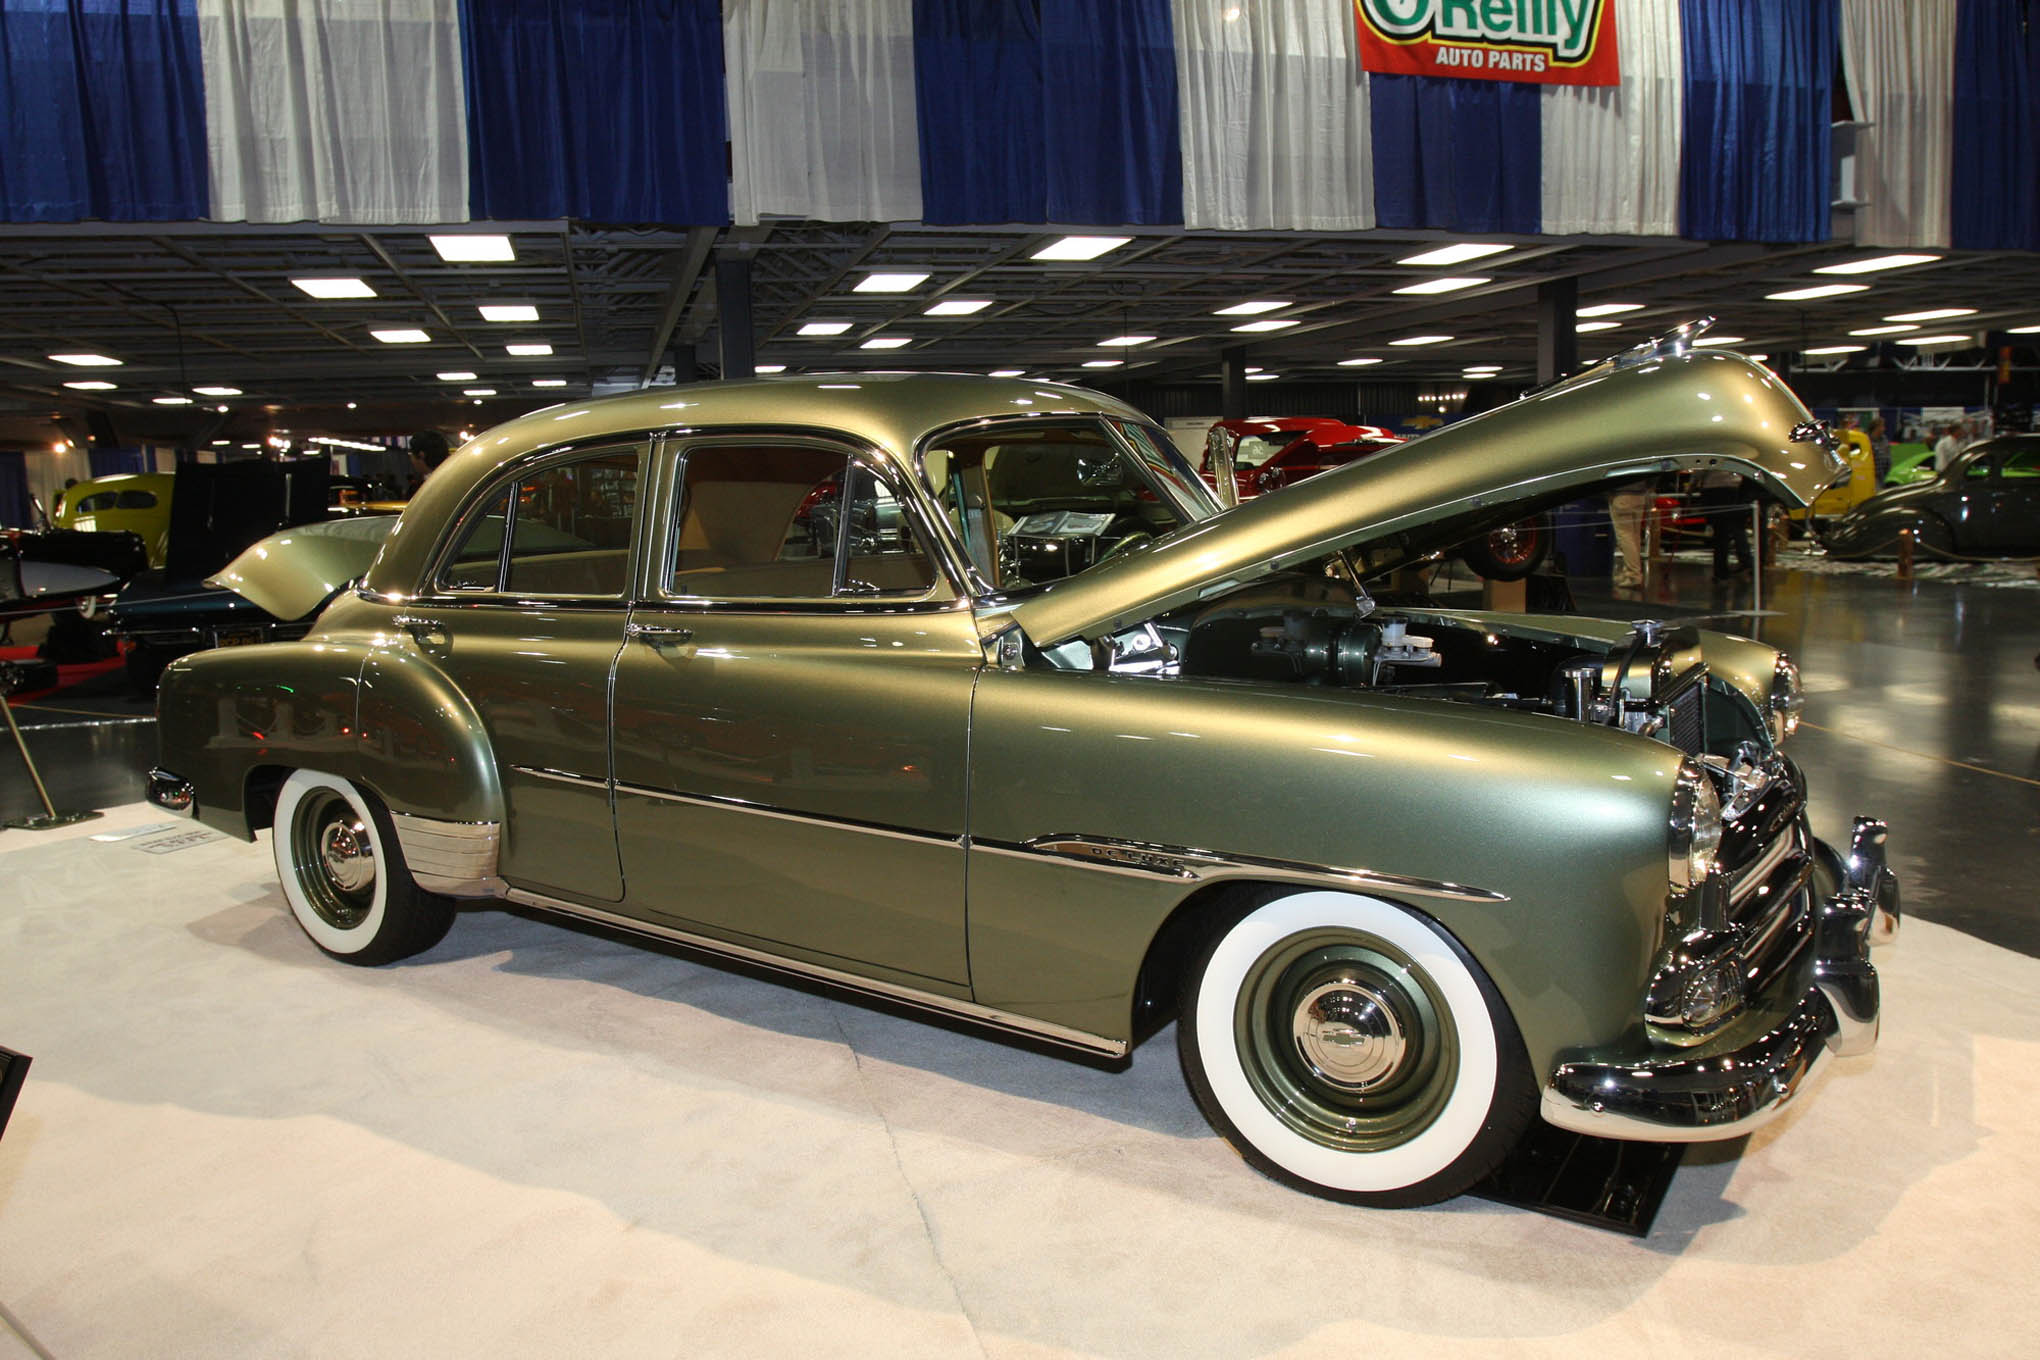 We're seeing more doors finally getting some respect. Ted and Silvia Hillyer's 1951 Chevy sedan was built by Lee's Vintage Car Shop in Sacramento. It's stuffed with an LS1 engine, with a Fatman frontend, Currie 9-inch rear, and covered with PPG Green Tea paint.